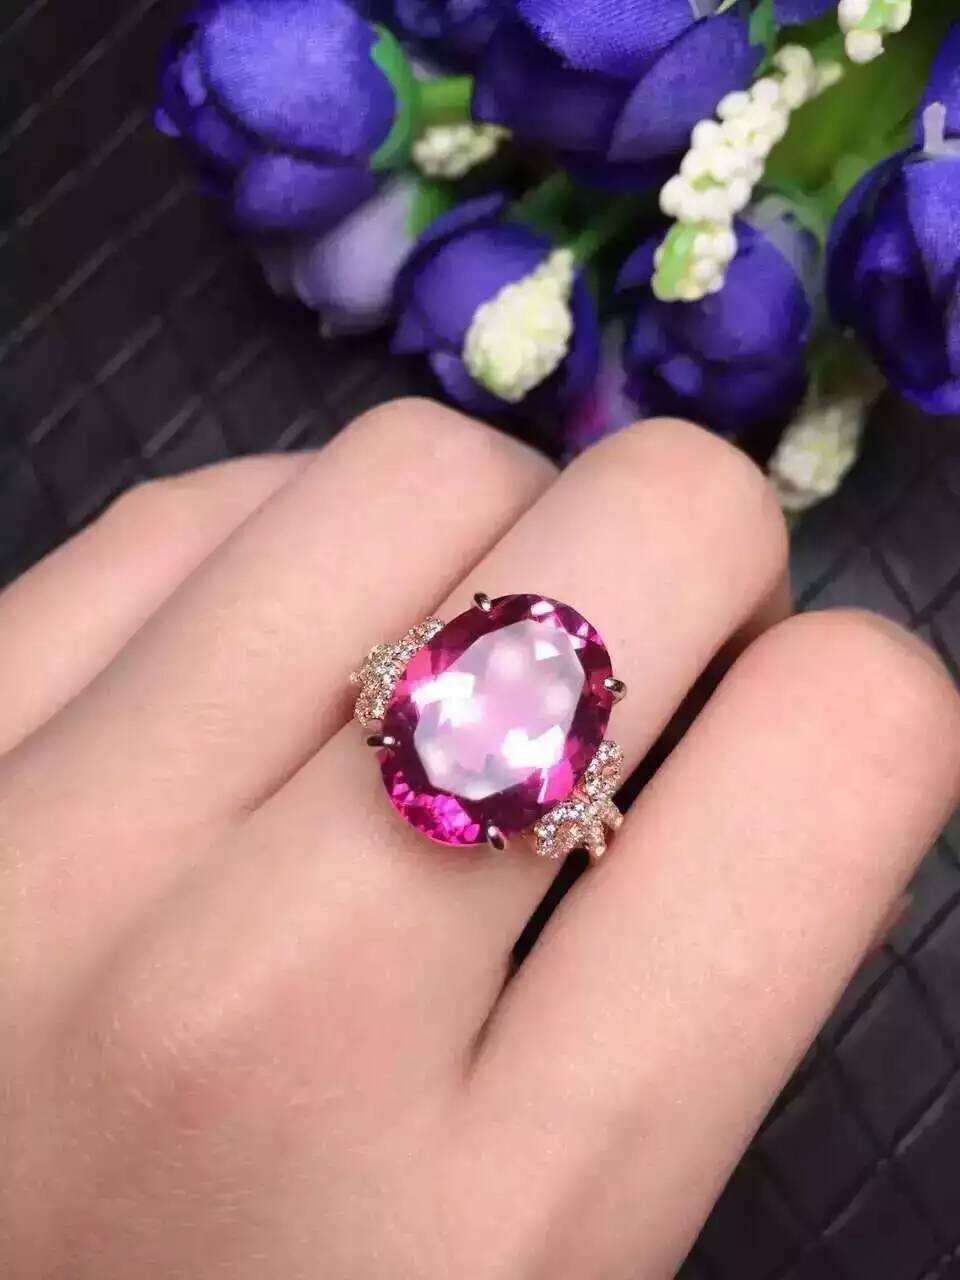 Natural red topaz stone Ring Natural gemstone Ring S925 sterling silver trendy Elegant big bow-knot women girl gift JewelryNatural red topaz stone Ring Natural gemstone Ring S925 sterling silver trendy Elegant big bow-knot women girl gift Jewelry